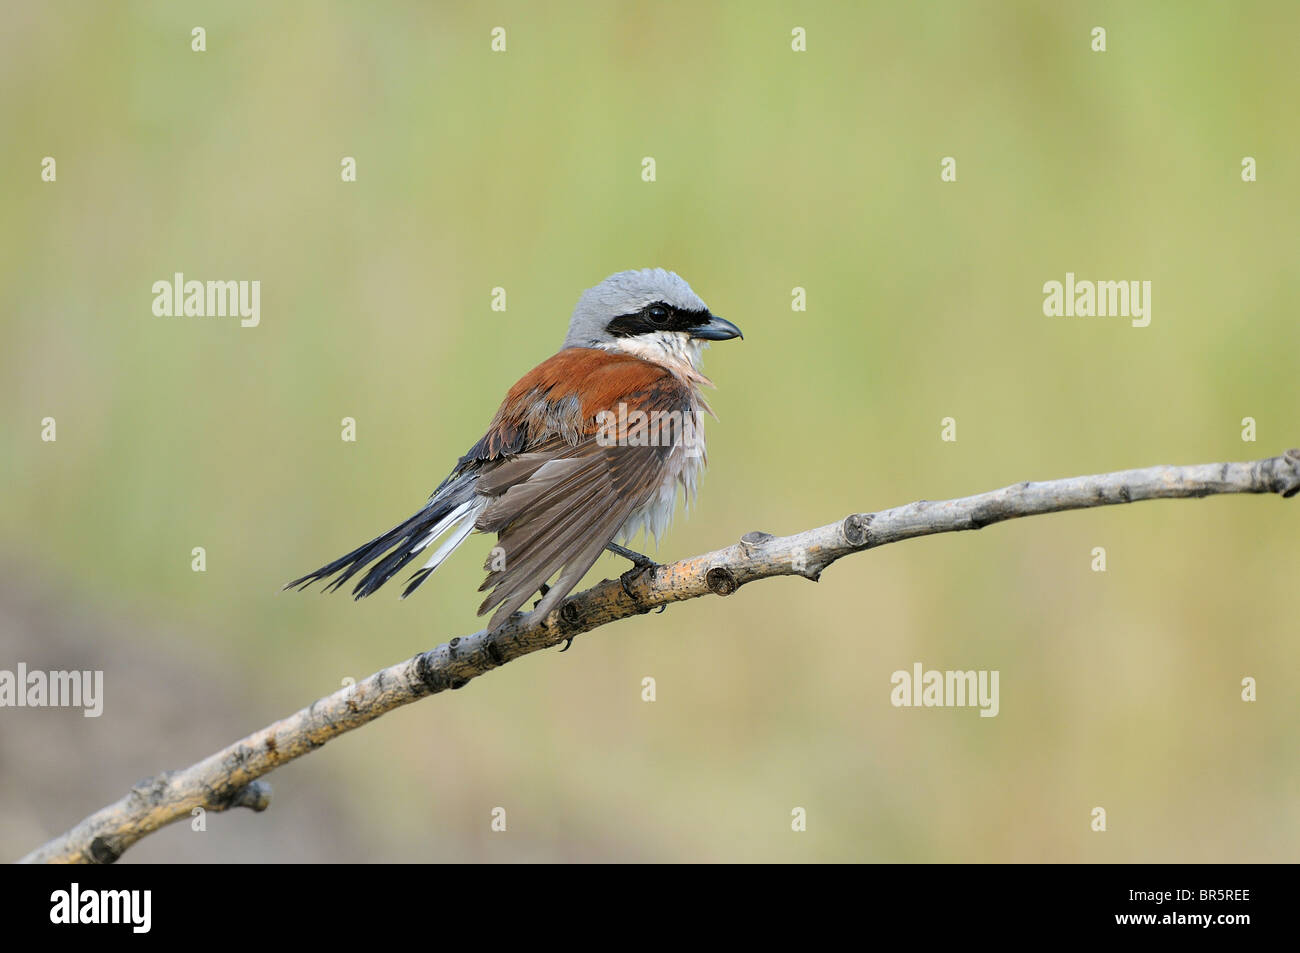 Red-backed Shrike (Lanius collurio) male perched on twig with wet feathers, Bulgaria - Stock Image